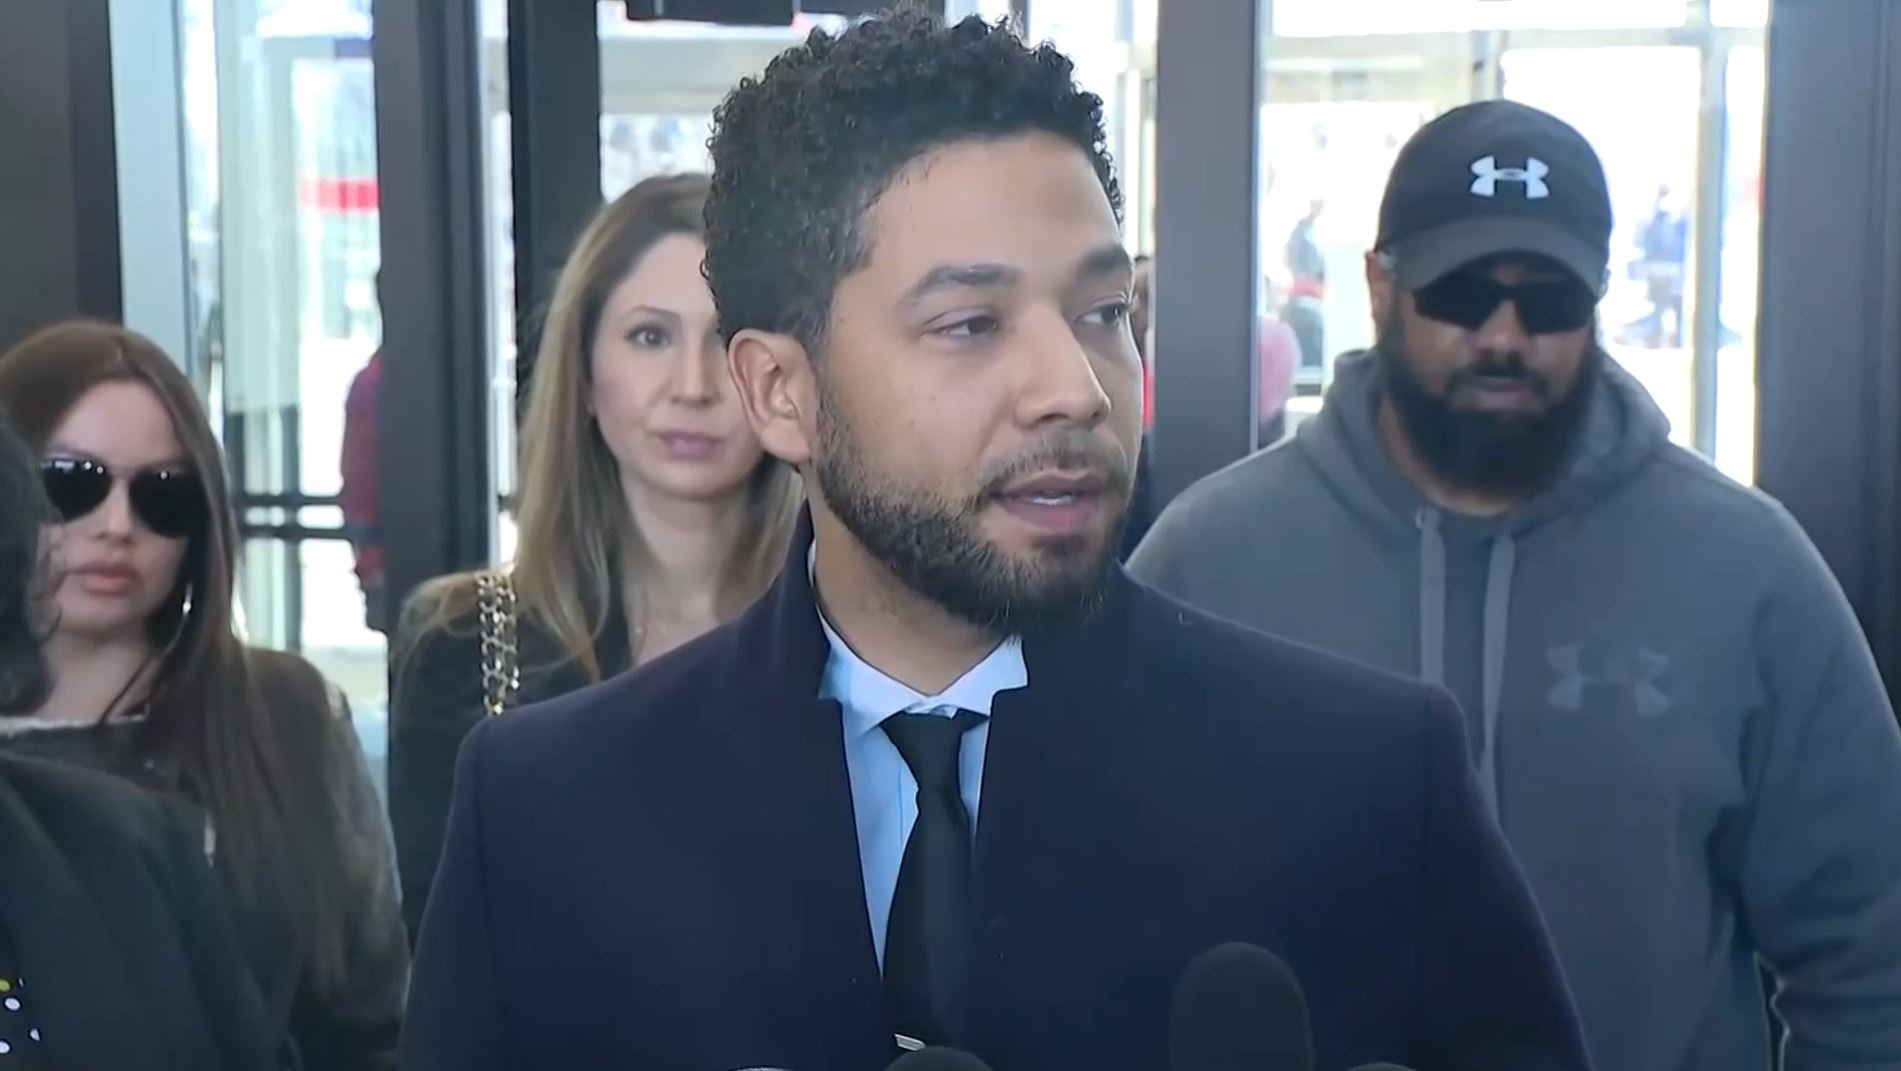 Jussie Smollett outside court 26.03.2019 after all charges dropped